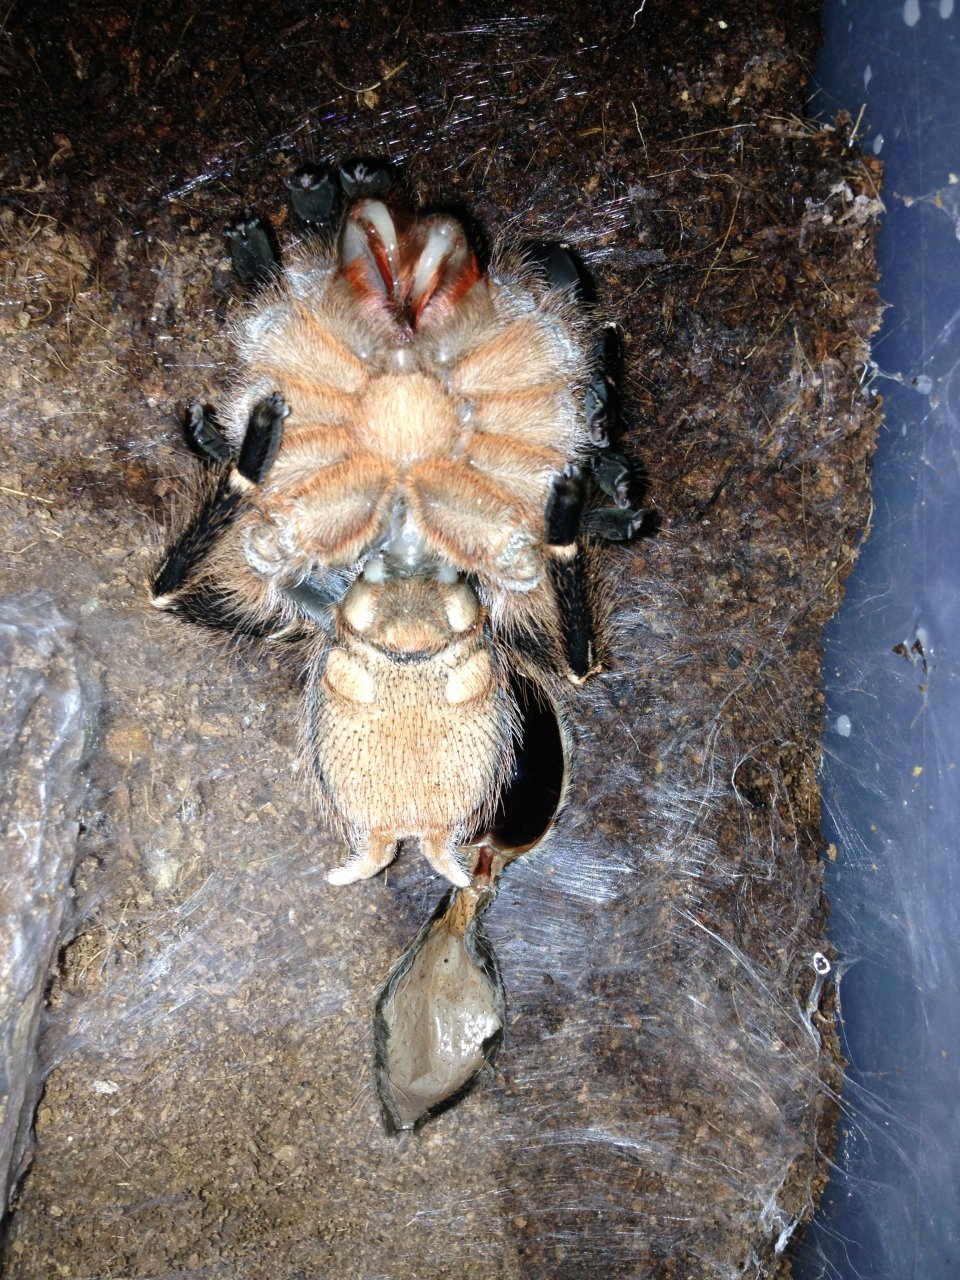 0.1 A. seemanni freshly molted